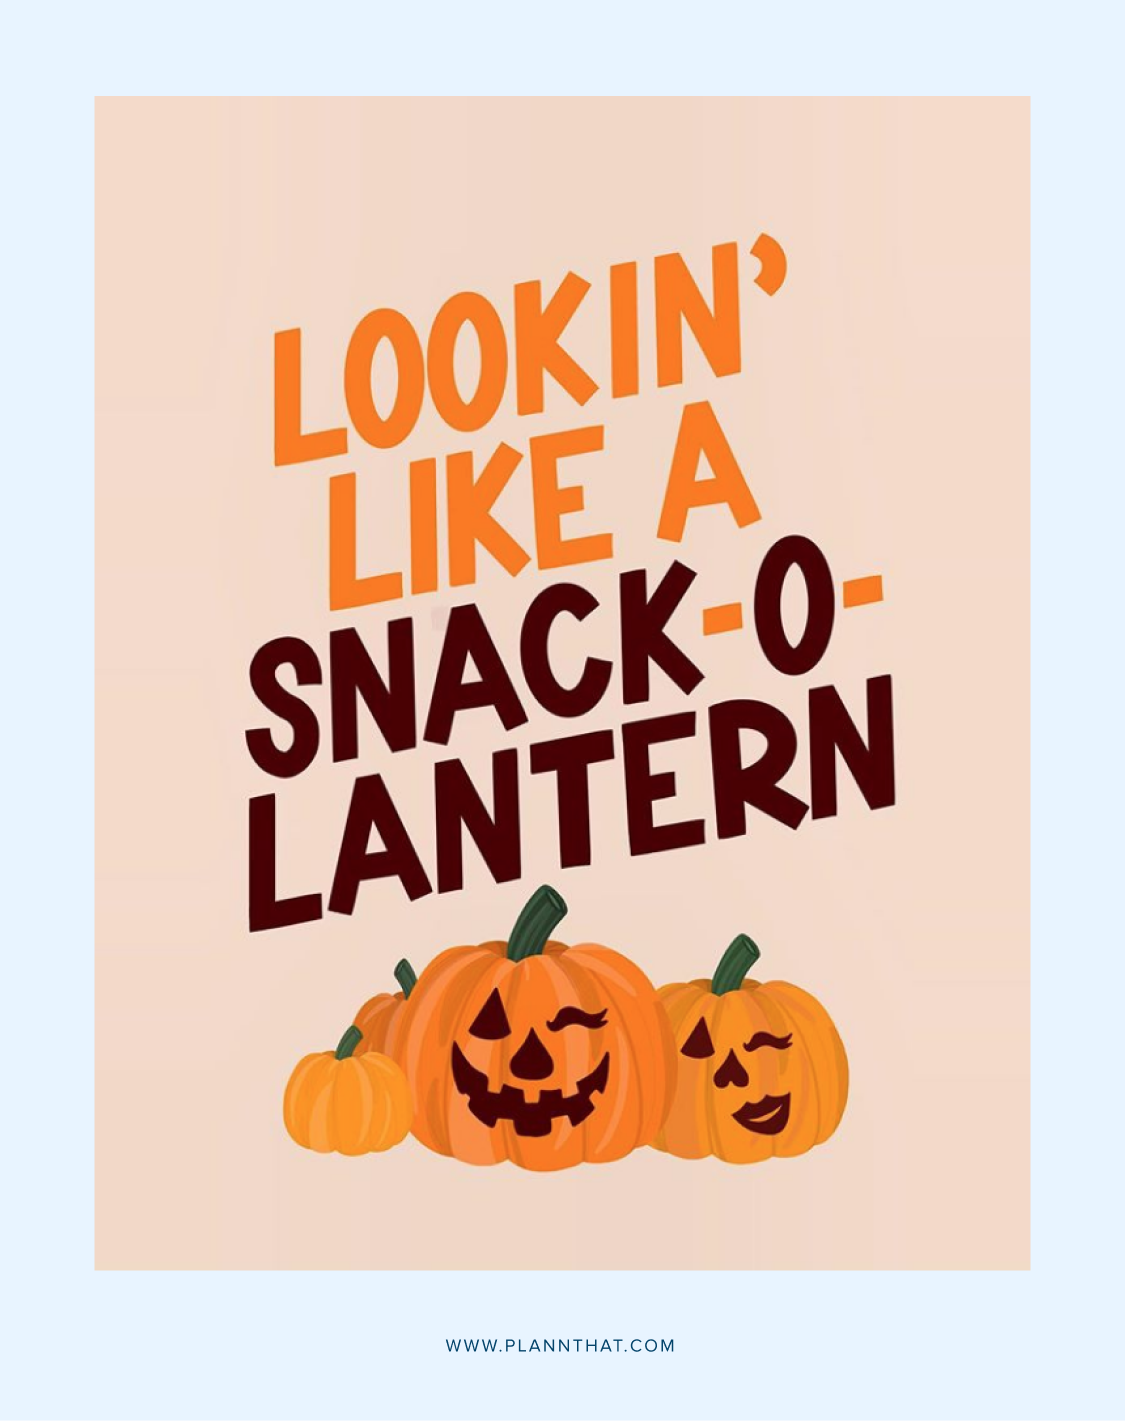 Share a Halloween quote/meme